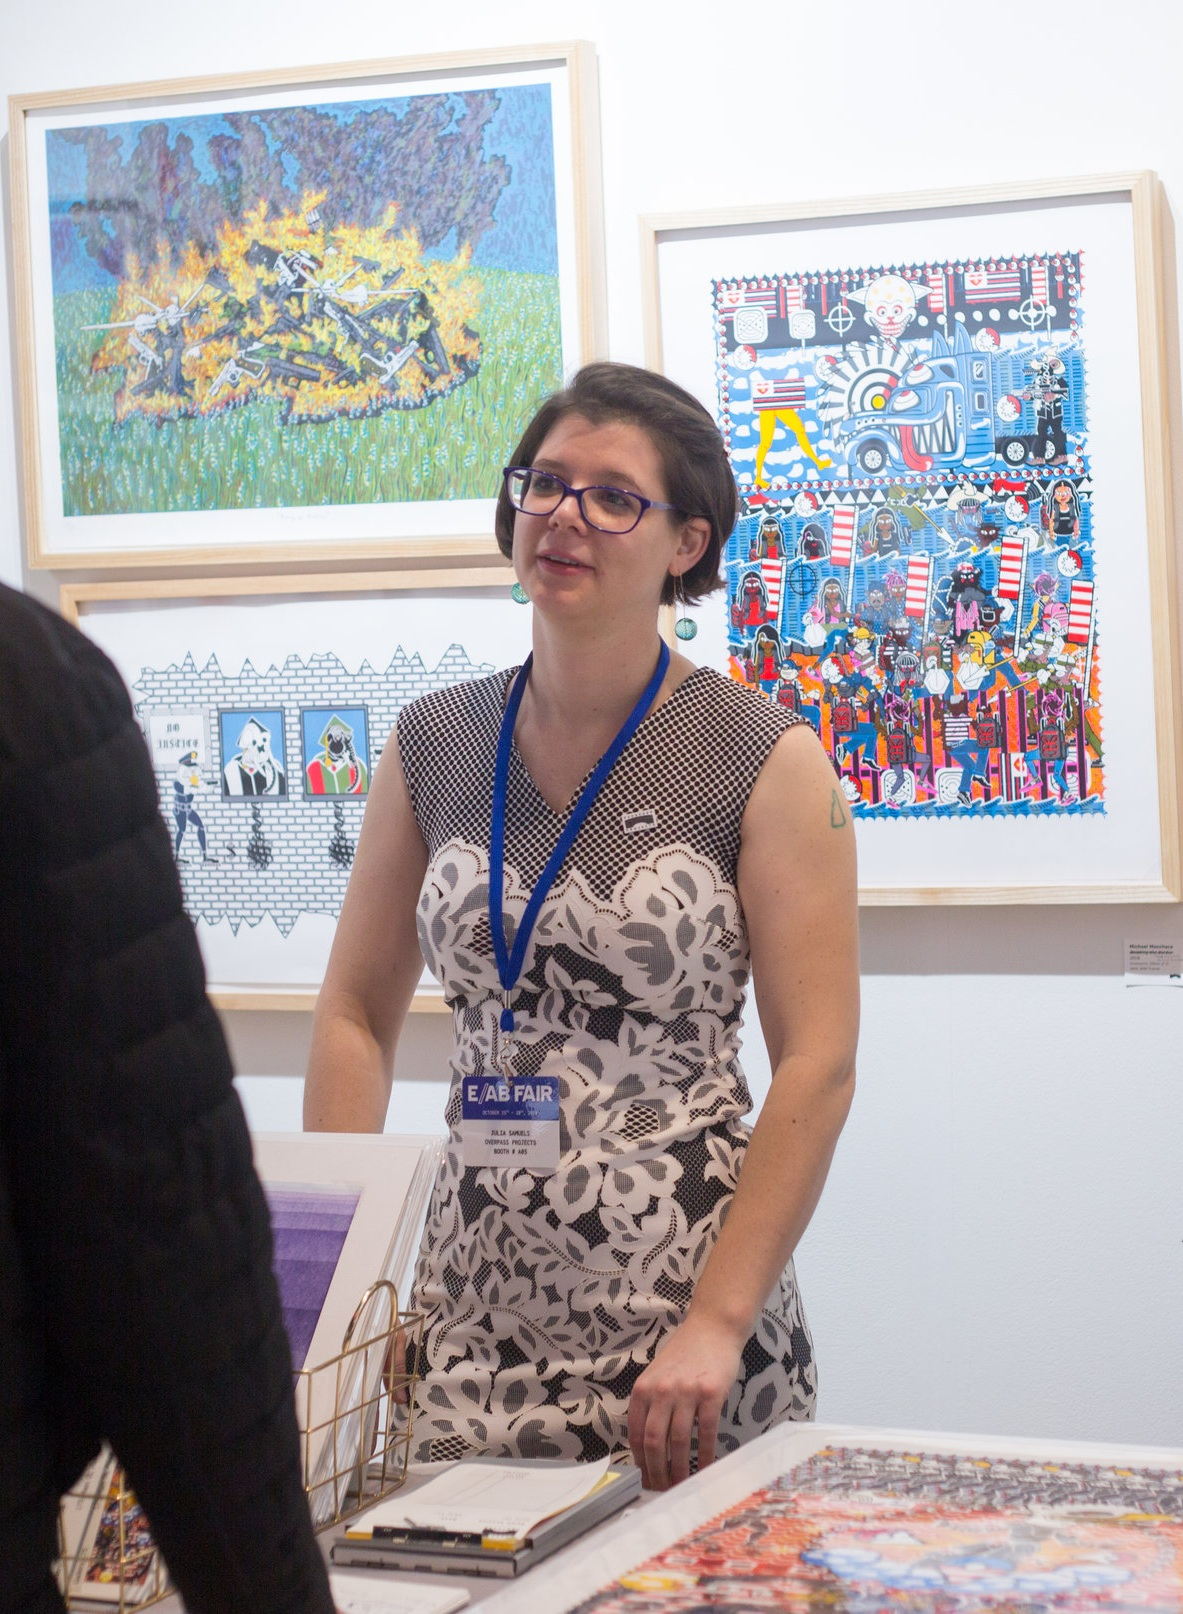 Master Printer Julia Samuels representing Overpass at the E/AB Fair in 2018.